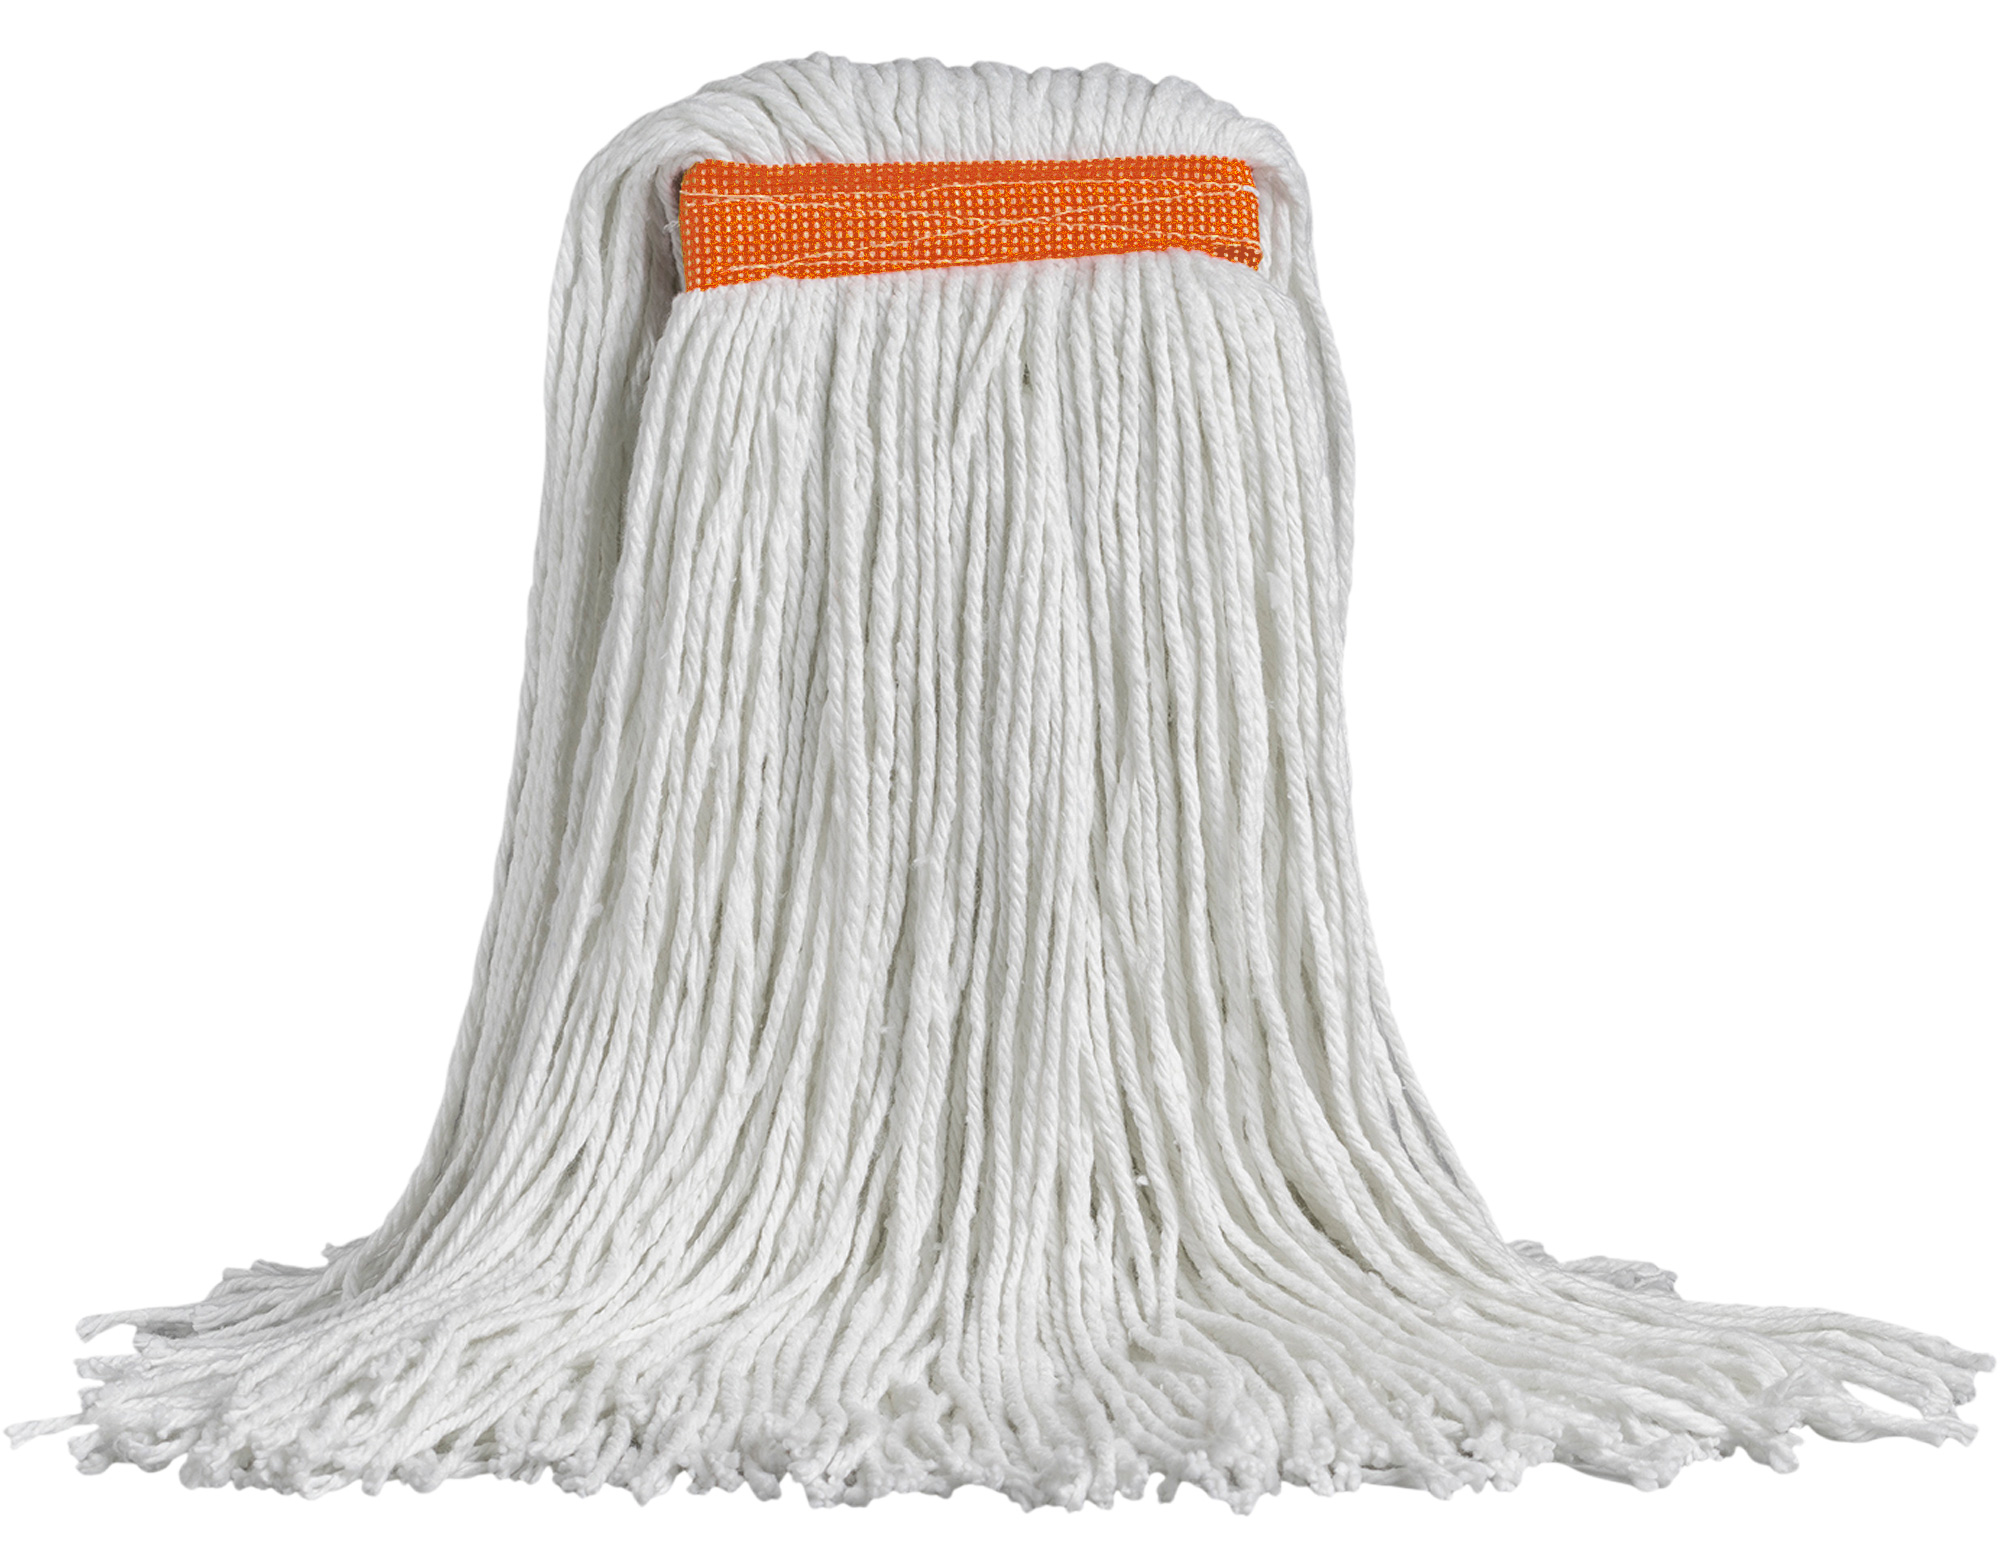 Synray™ Cut End, Narrow Band Mop Head 12oz/350g